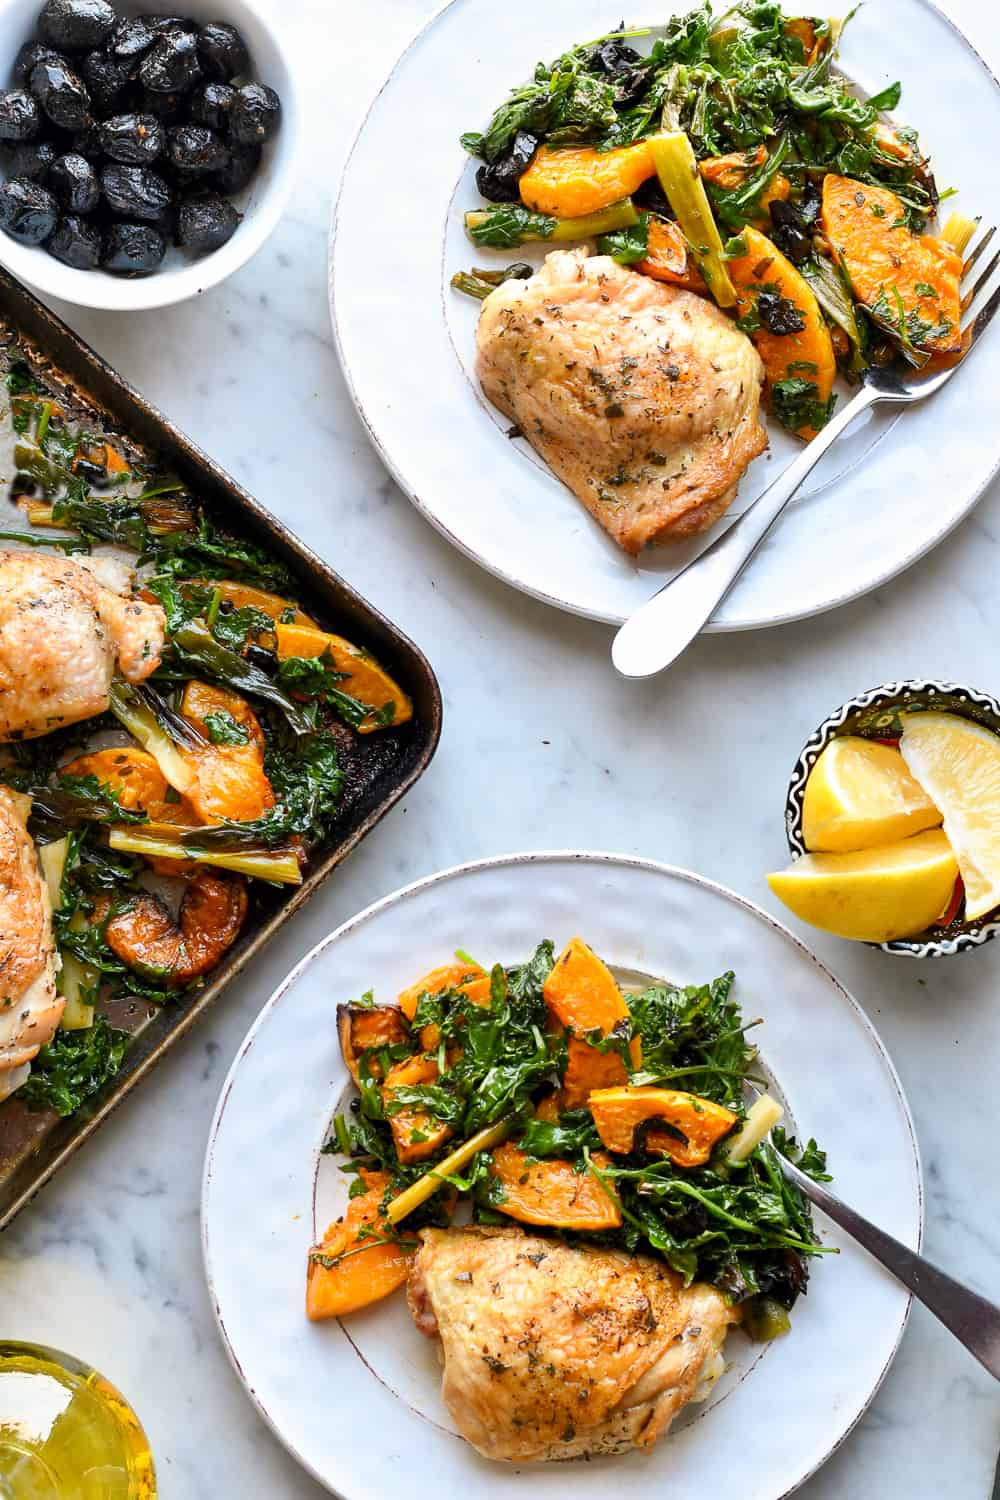 Sheet Pan Chicken with Butternut Squash and Kale 2 plates